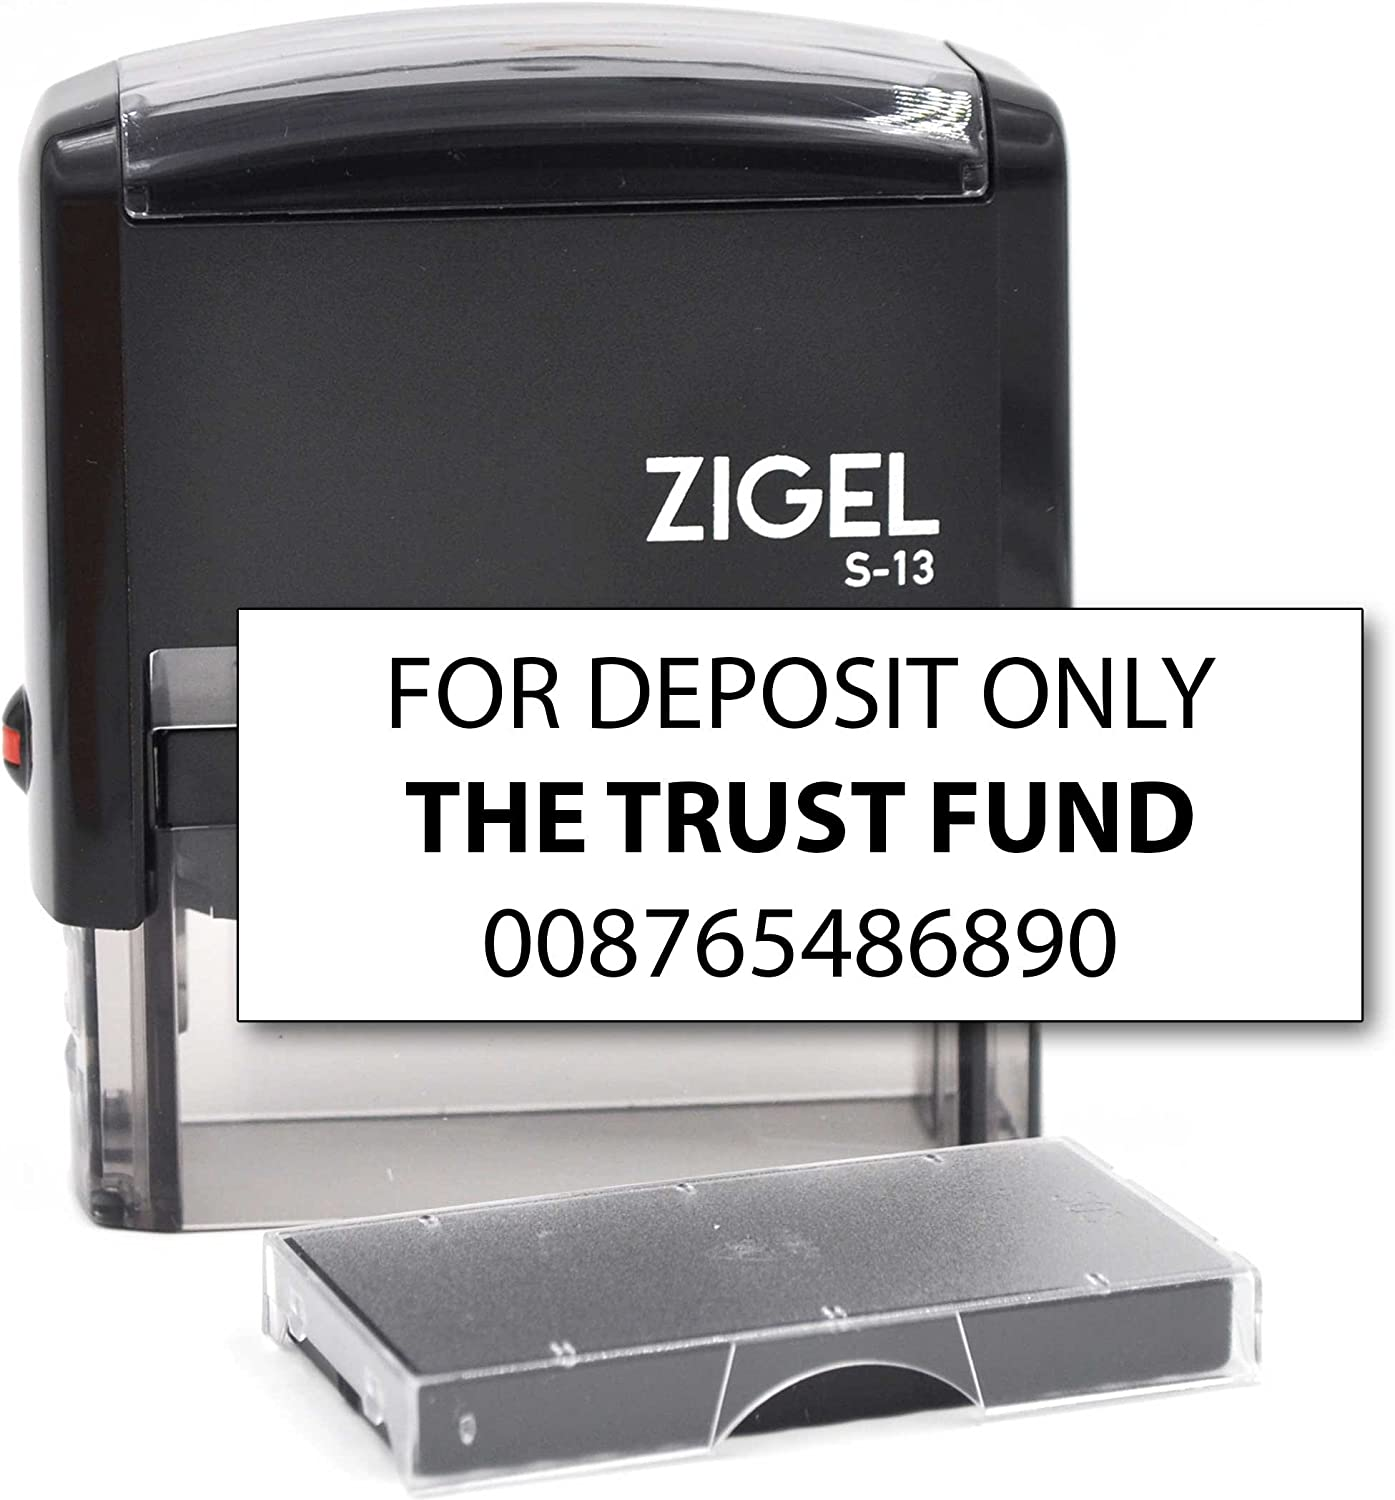 ZIGEL Customized Bank Deposit Stamp Self Inking Rubber Stamp 3 Line Bank Stamp with Extra Replacement Ink Pad